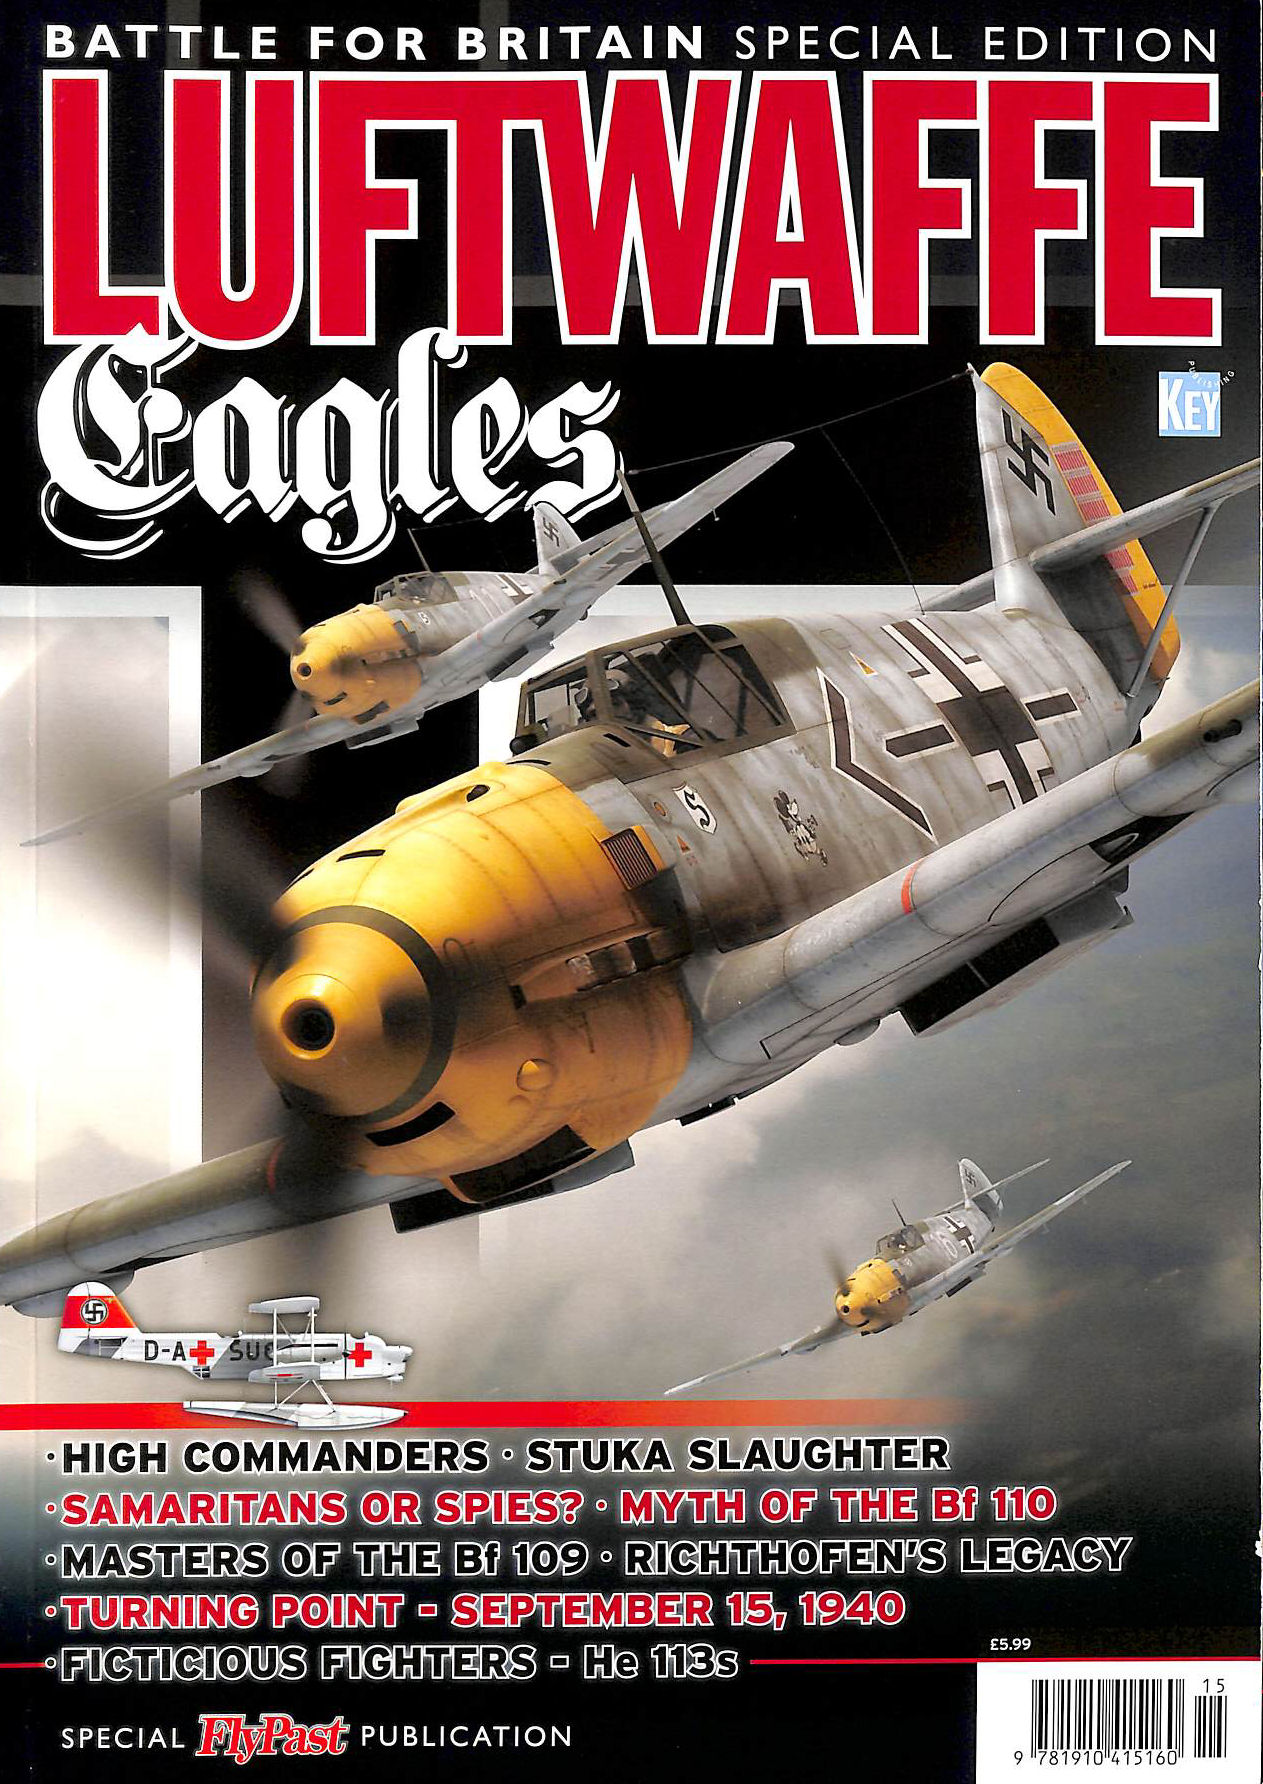 Image for Luftwaffe Eagles